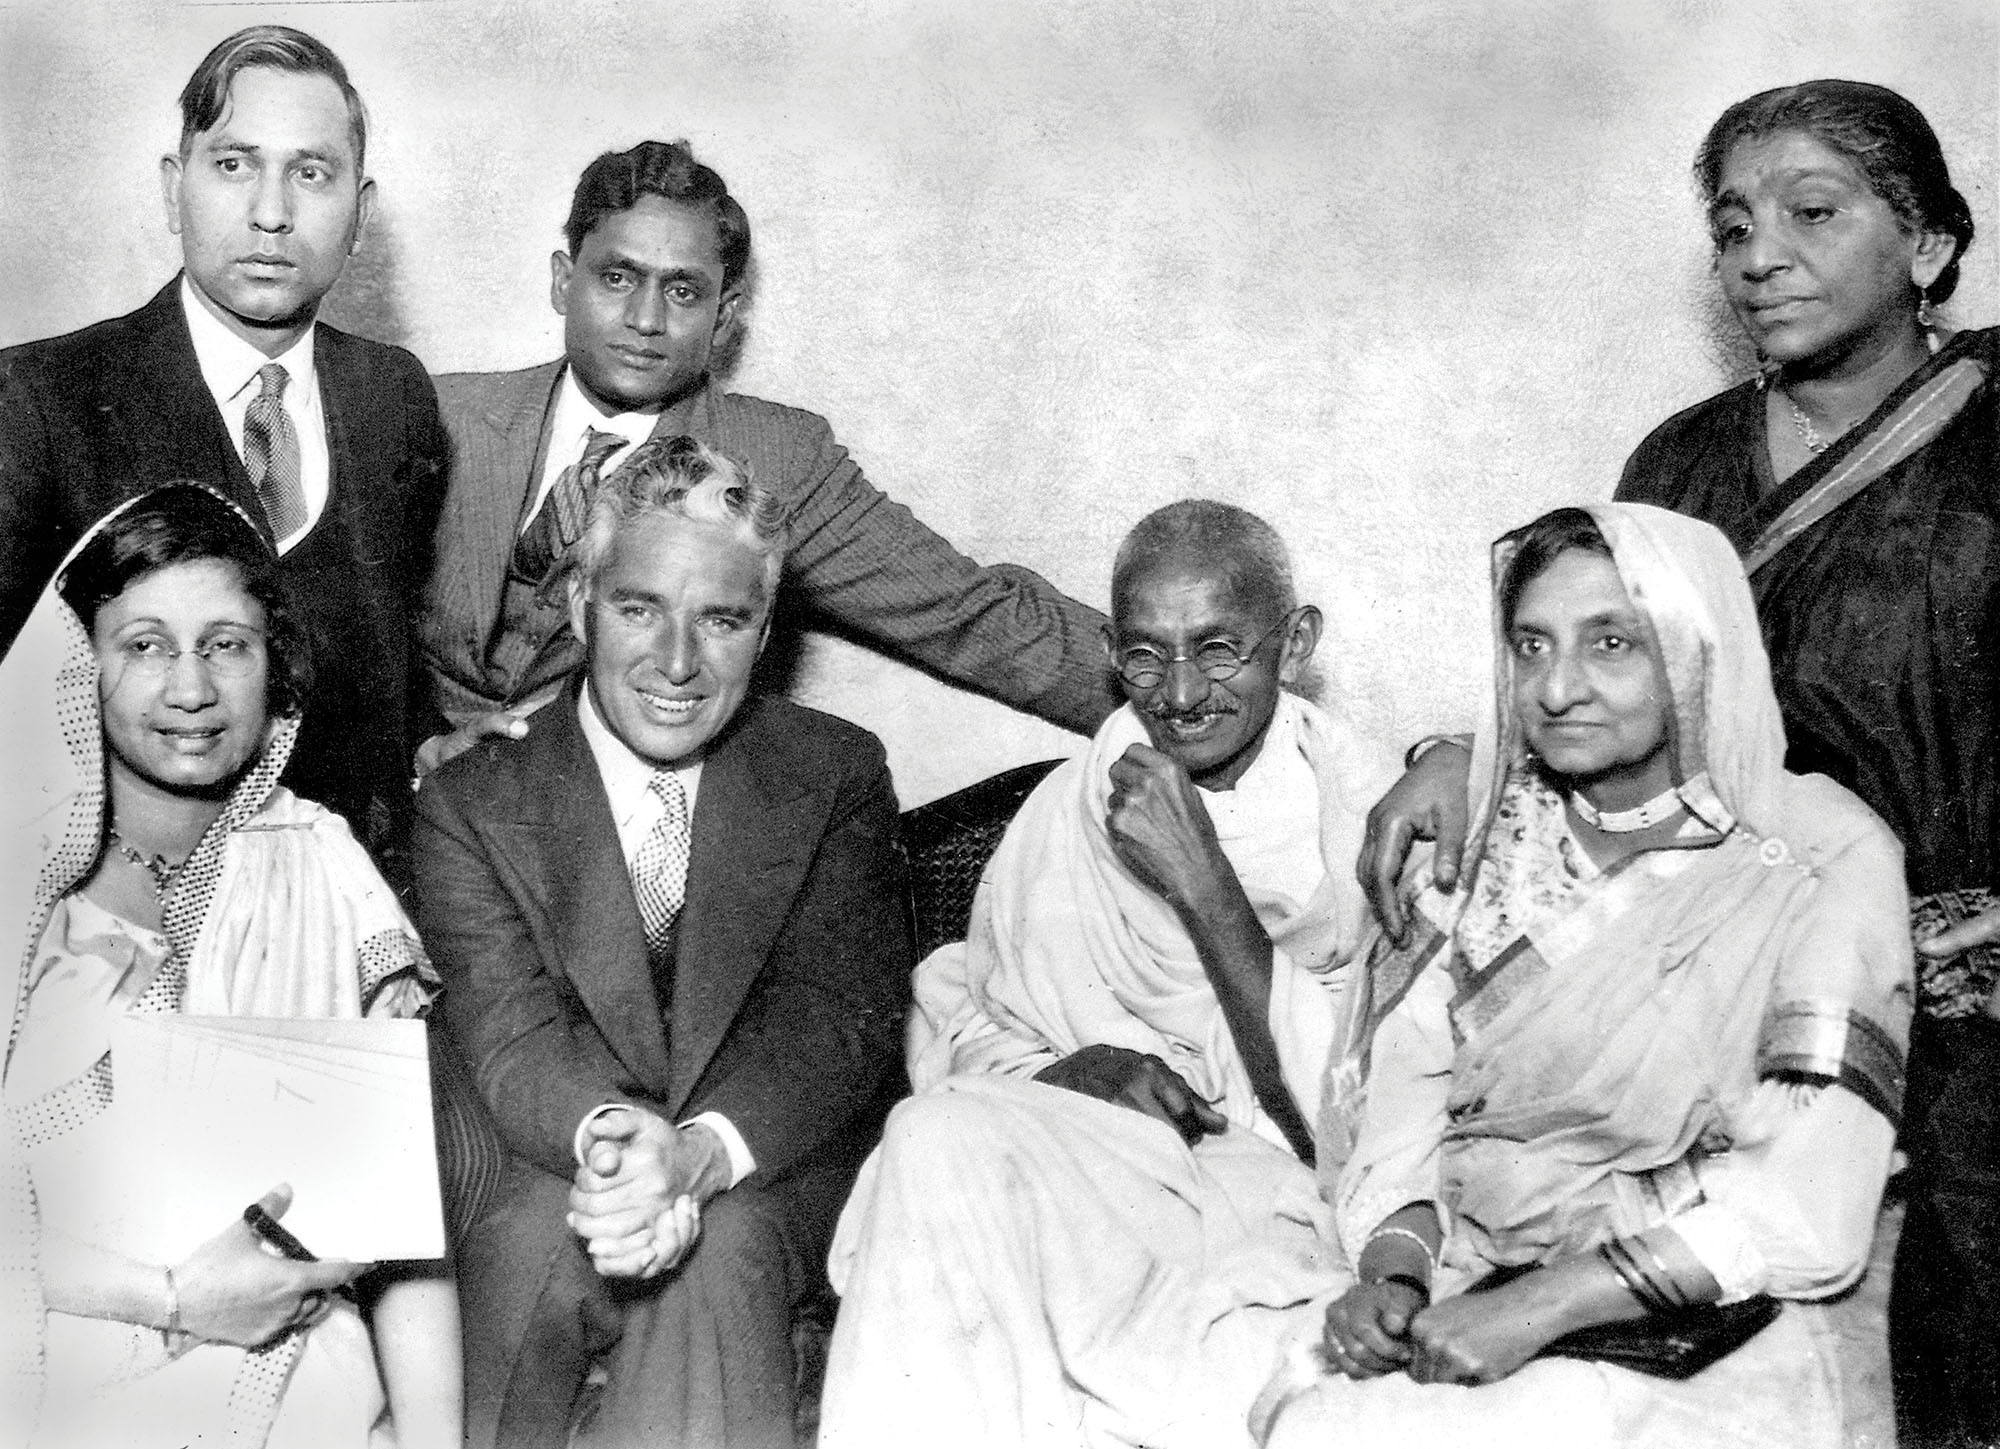 Gandhi met Charlie Chaplin even though the Mahatma had no idea who he was. In their brief meeting, they ended up arguing over the use of machinery. While Gandhi favoured a return to manual labour – as illustrated in his use of the charkha to spin cloth – Chaplin believed that automation was synonymous with progress. Credit: Alamy